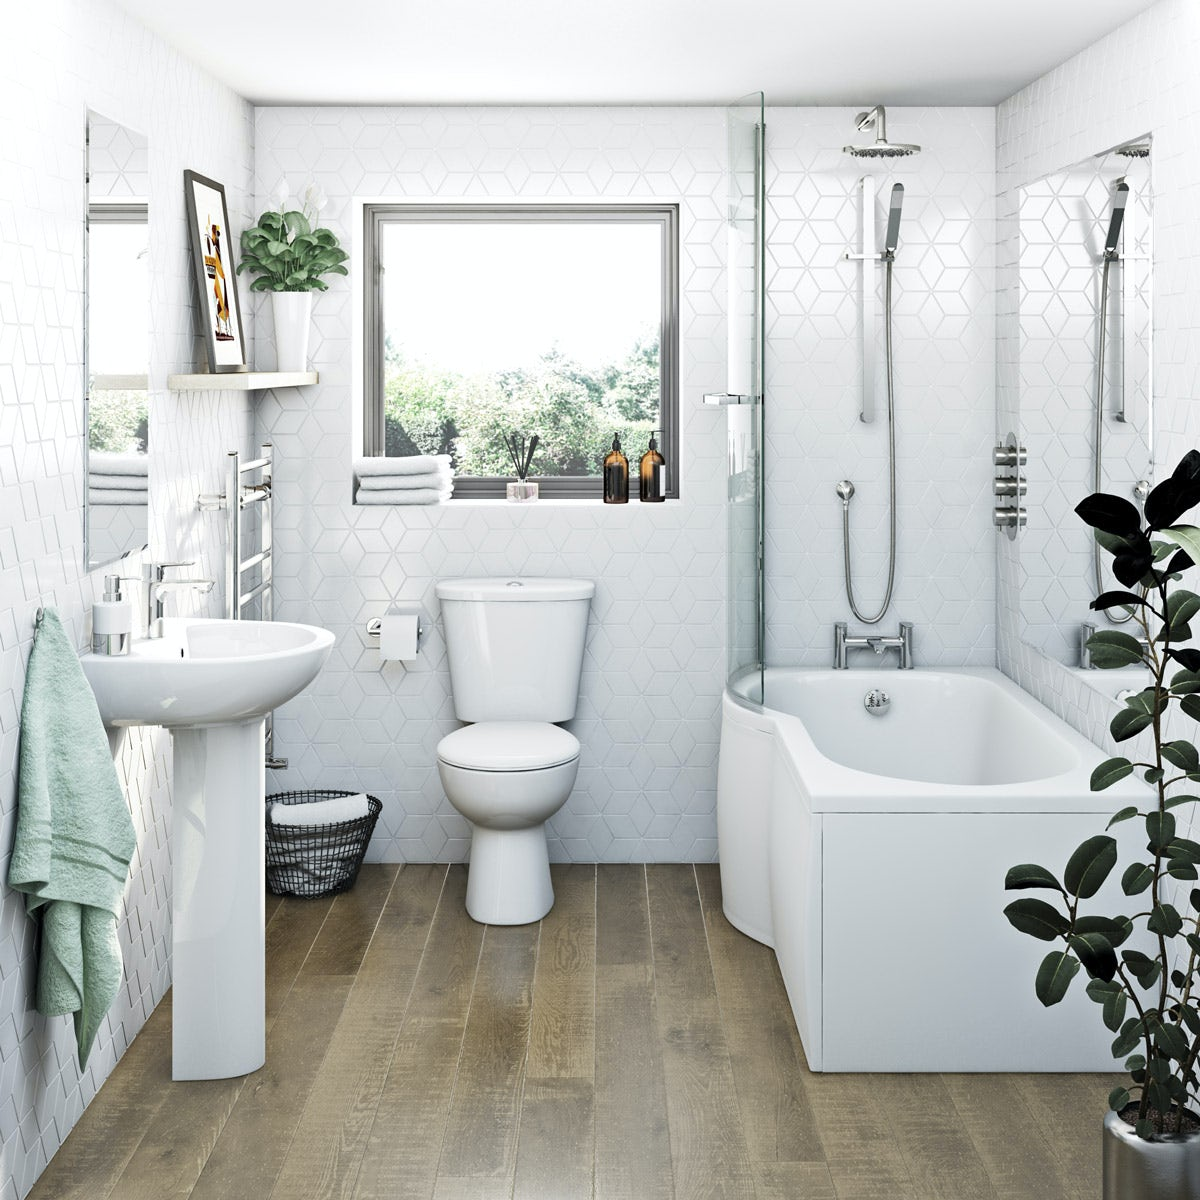 Which Is Better A Bath Or Shower: Clarity Bathroom Suite With Left Handed P Shaped Shower